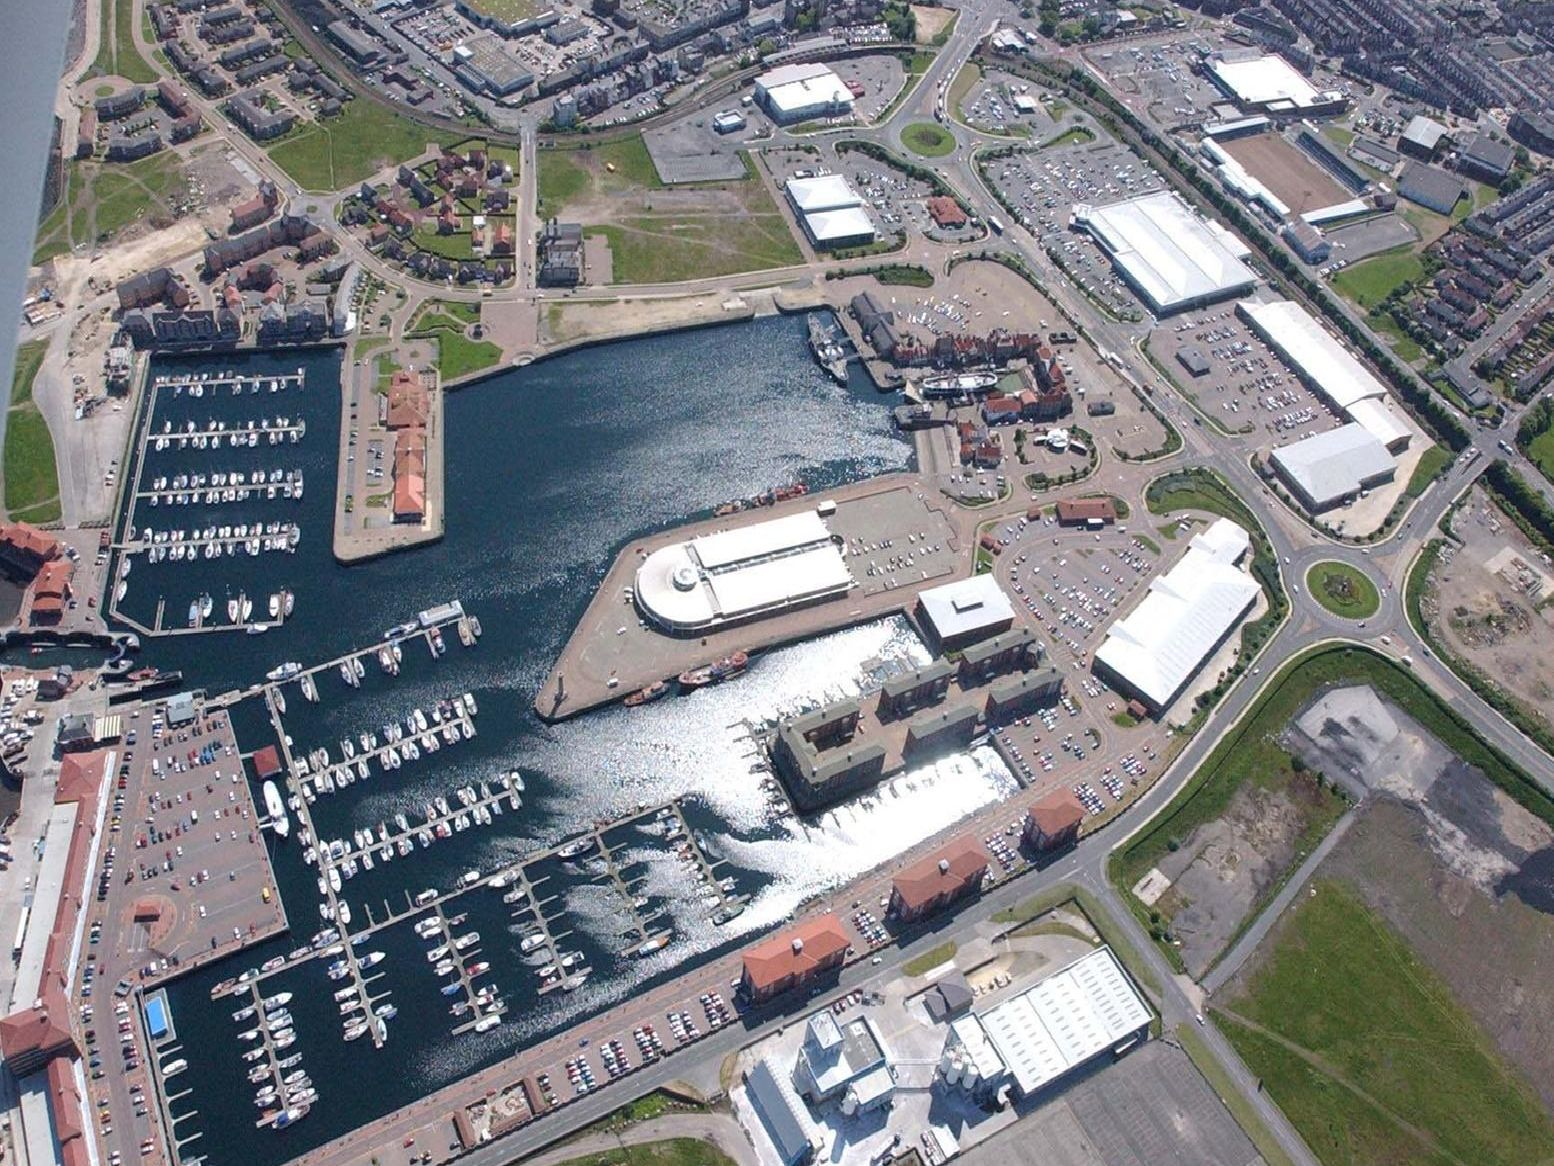 An aerial view of Hartlepool